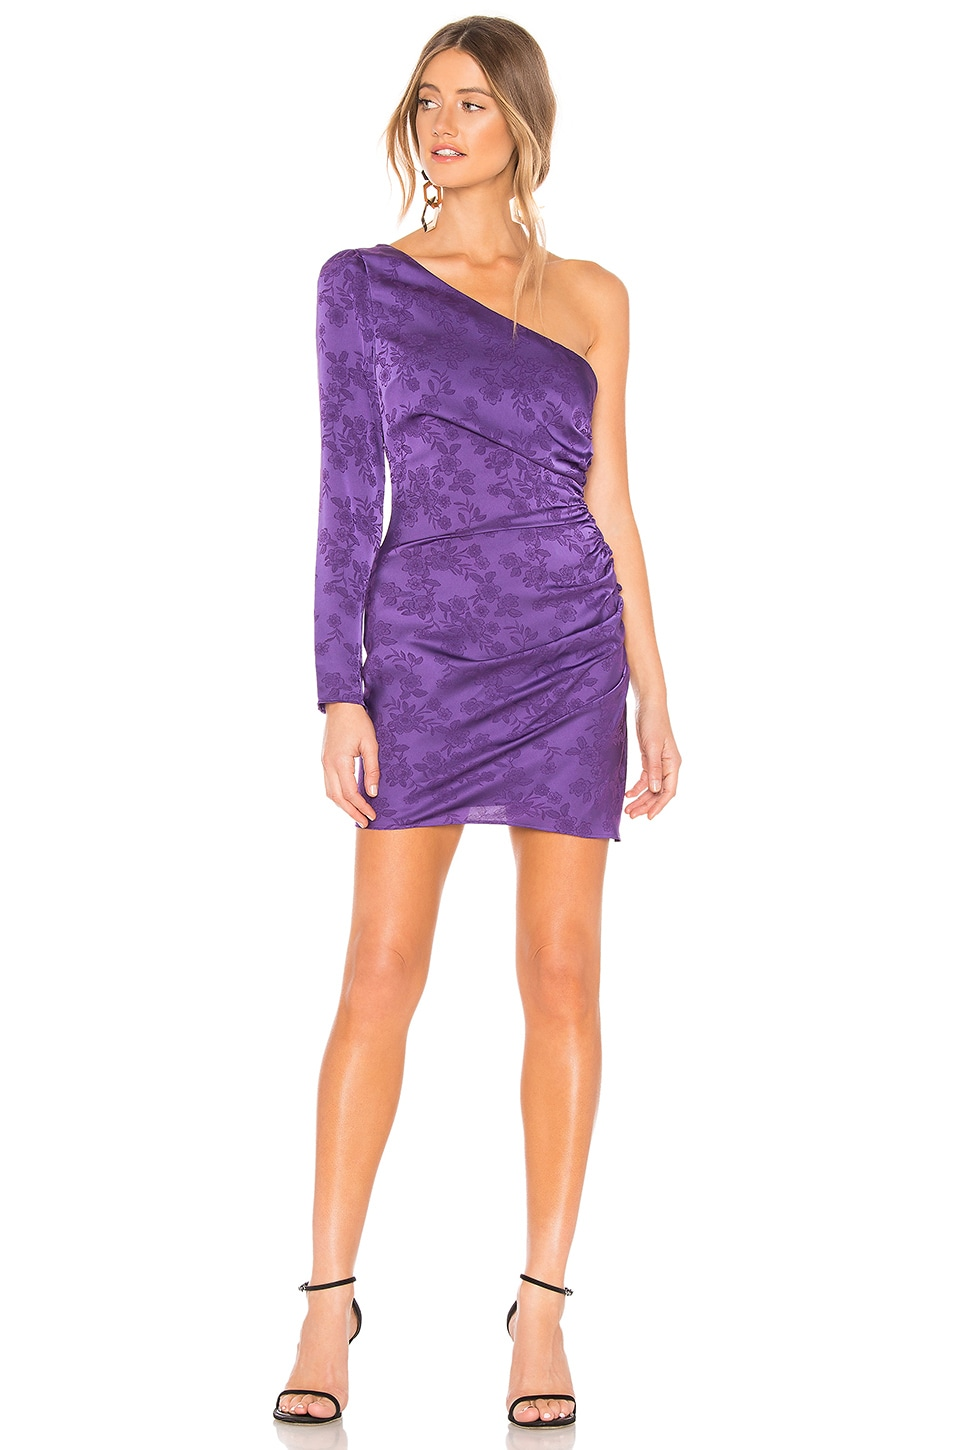 Privacy Please Kerry Mini Dress in Purple